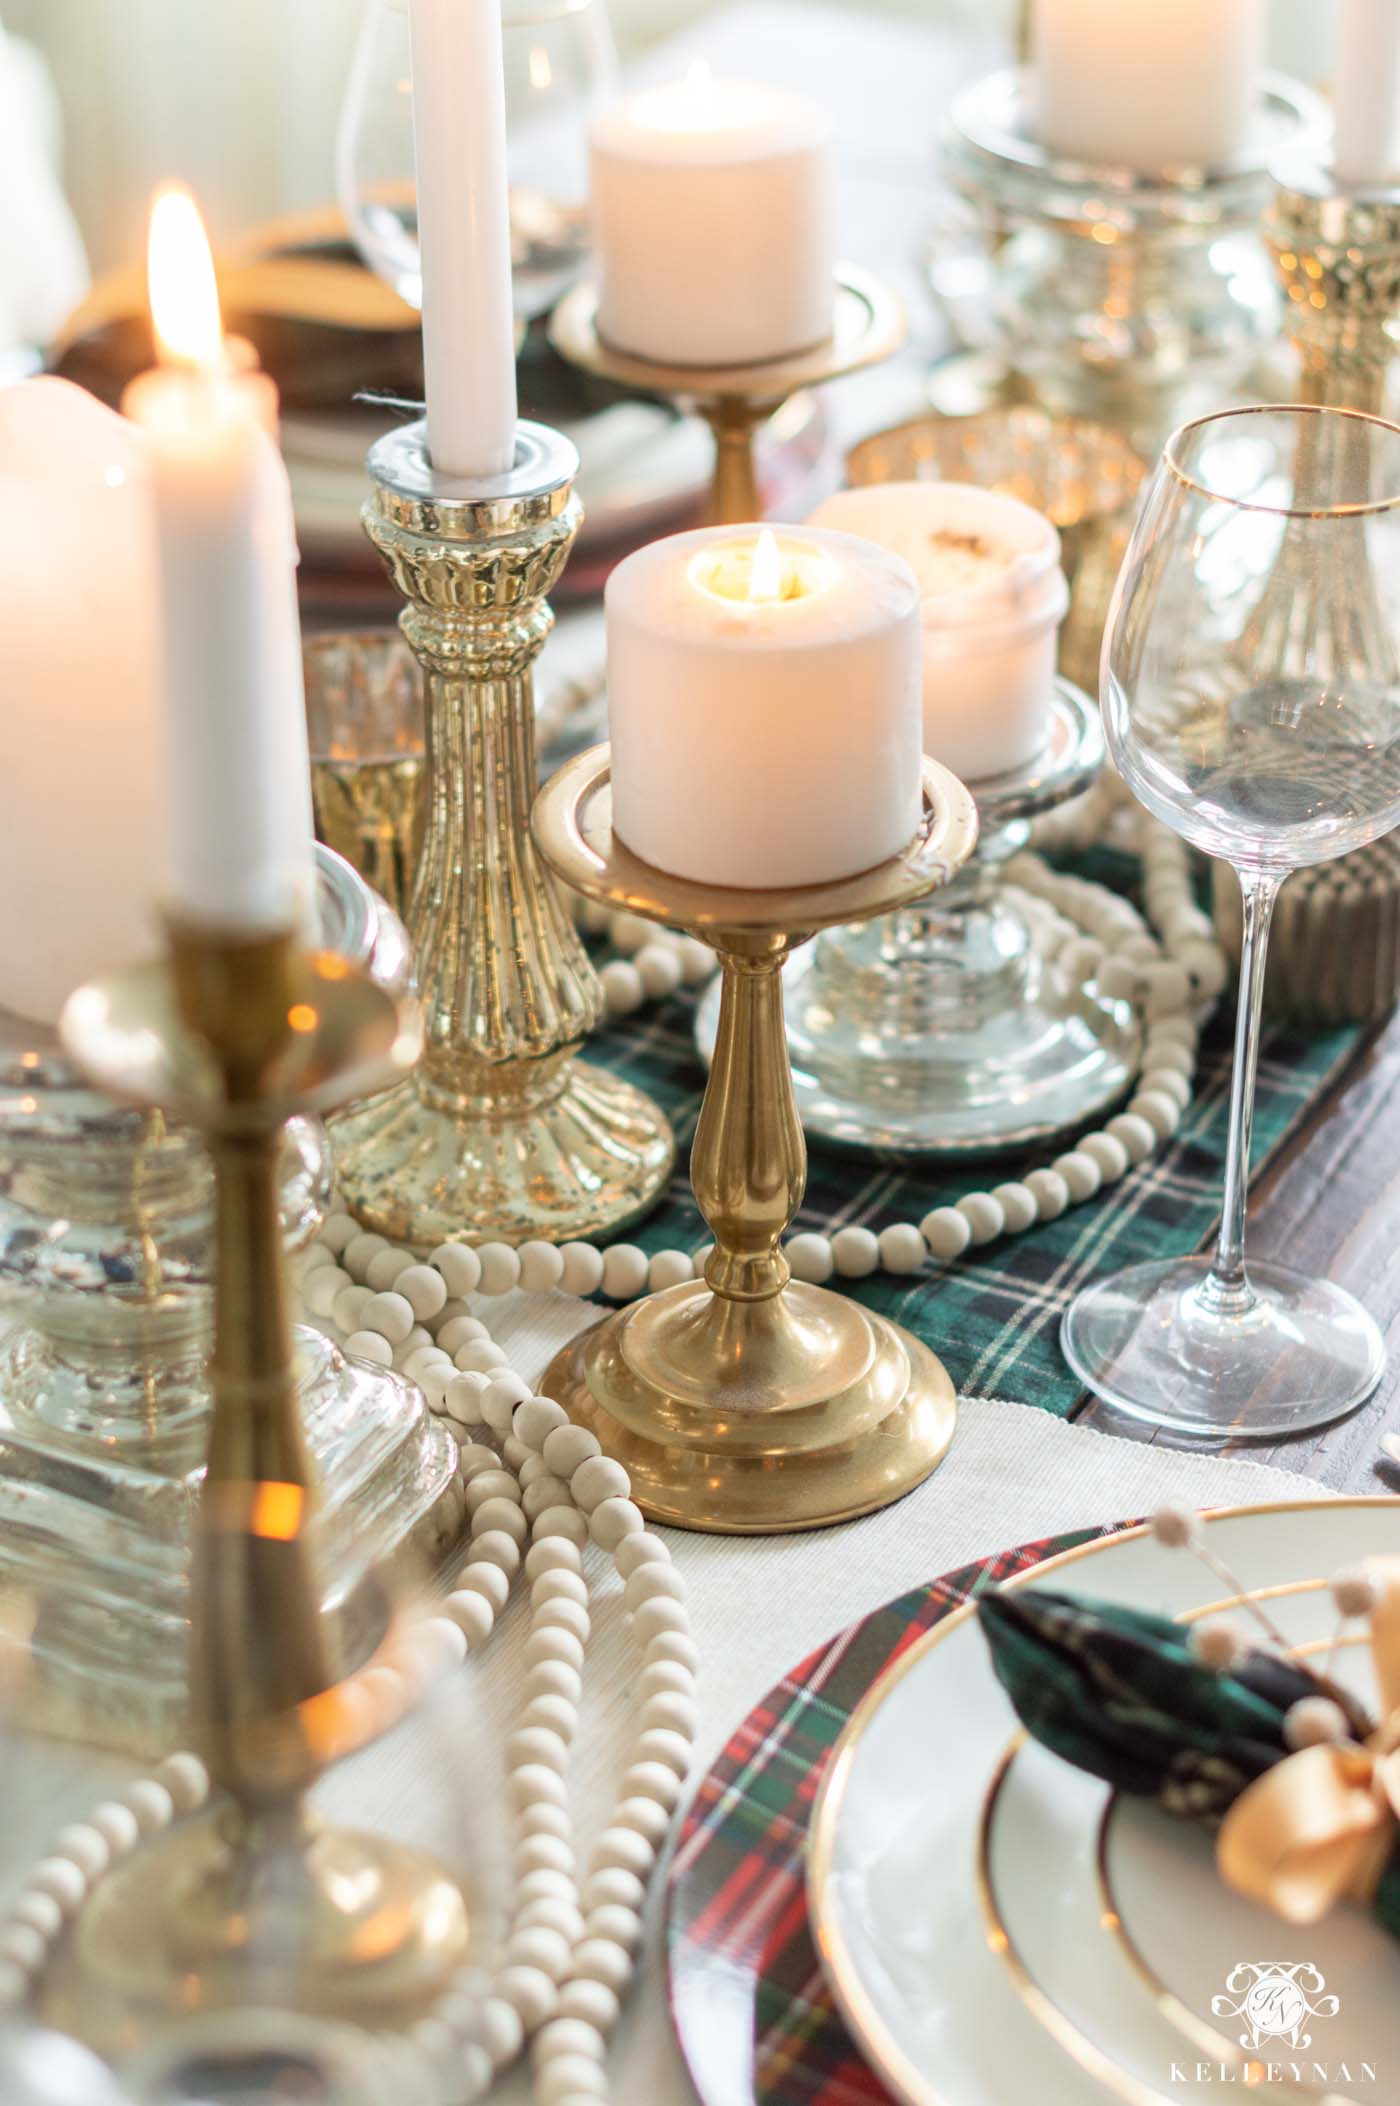 Elegant Christmas Table Decorations and Centerpiece